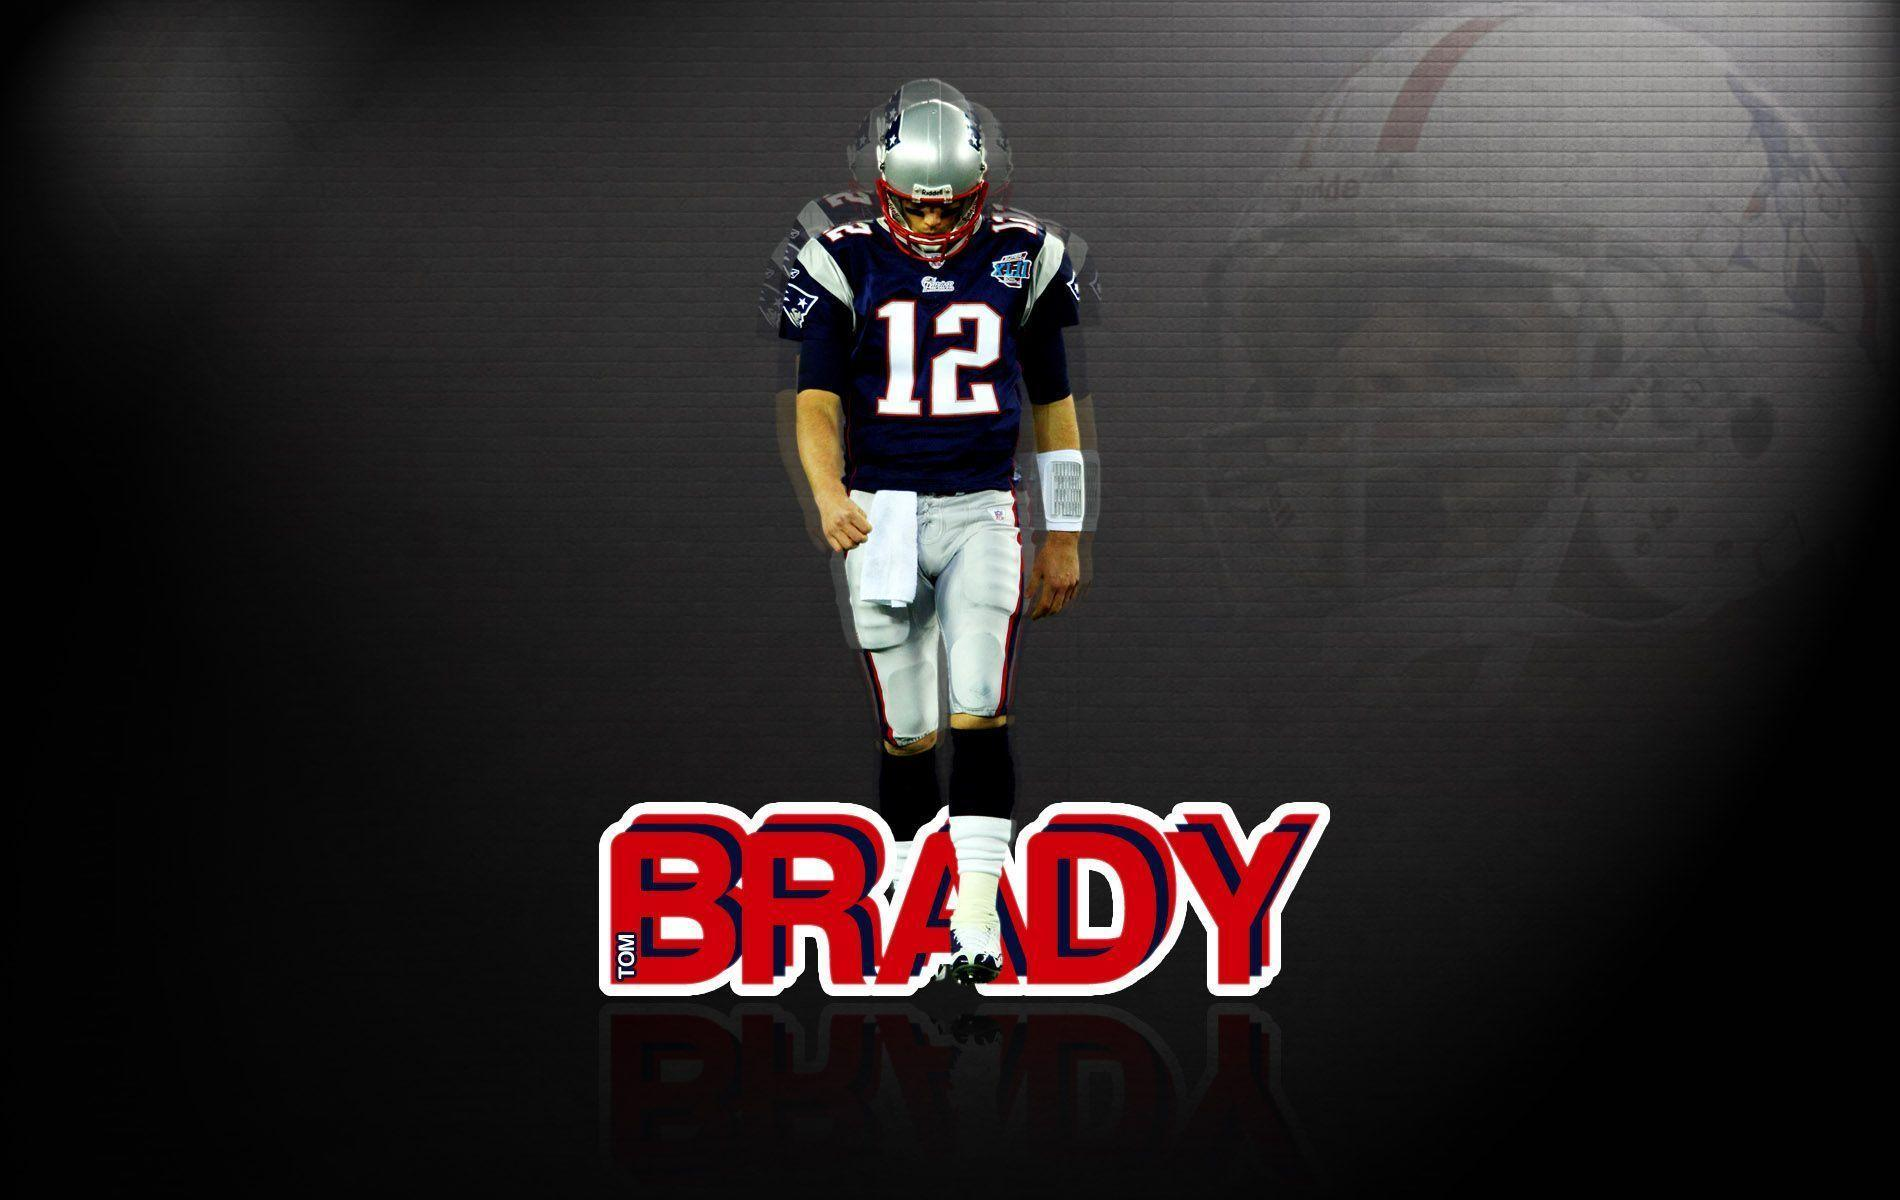 Tom Brady 2015 New England Patriots Wallpaper Wide or HD | Male ...